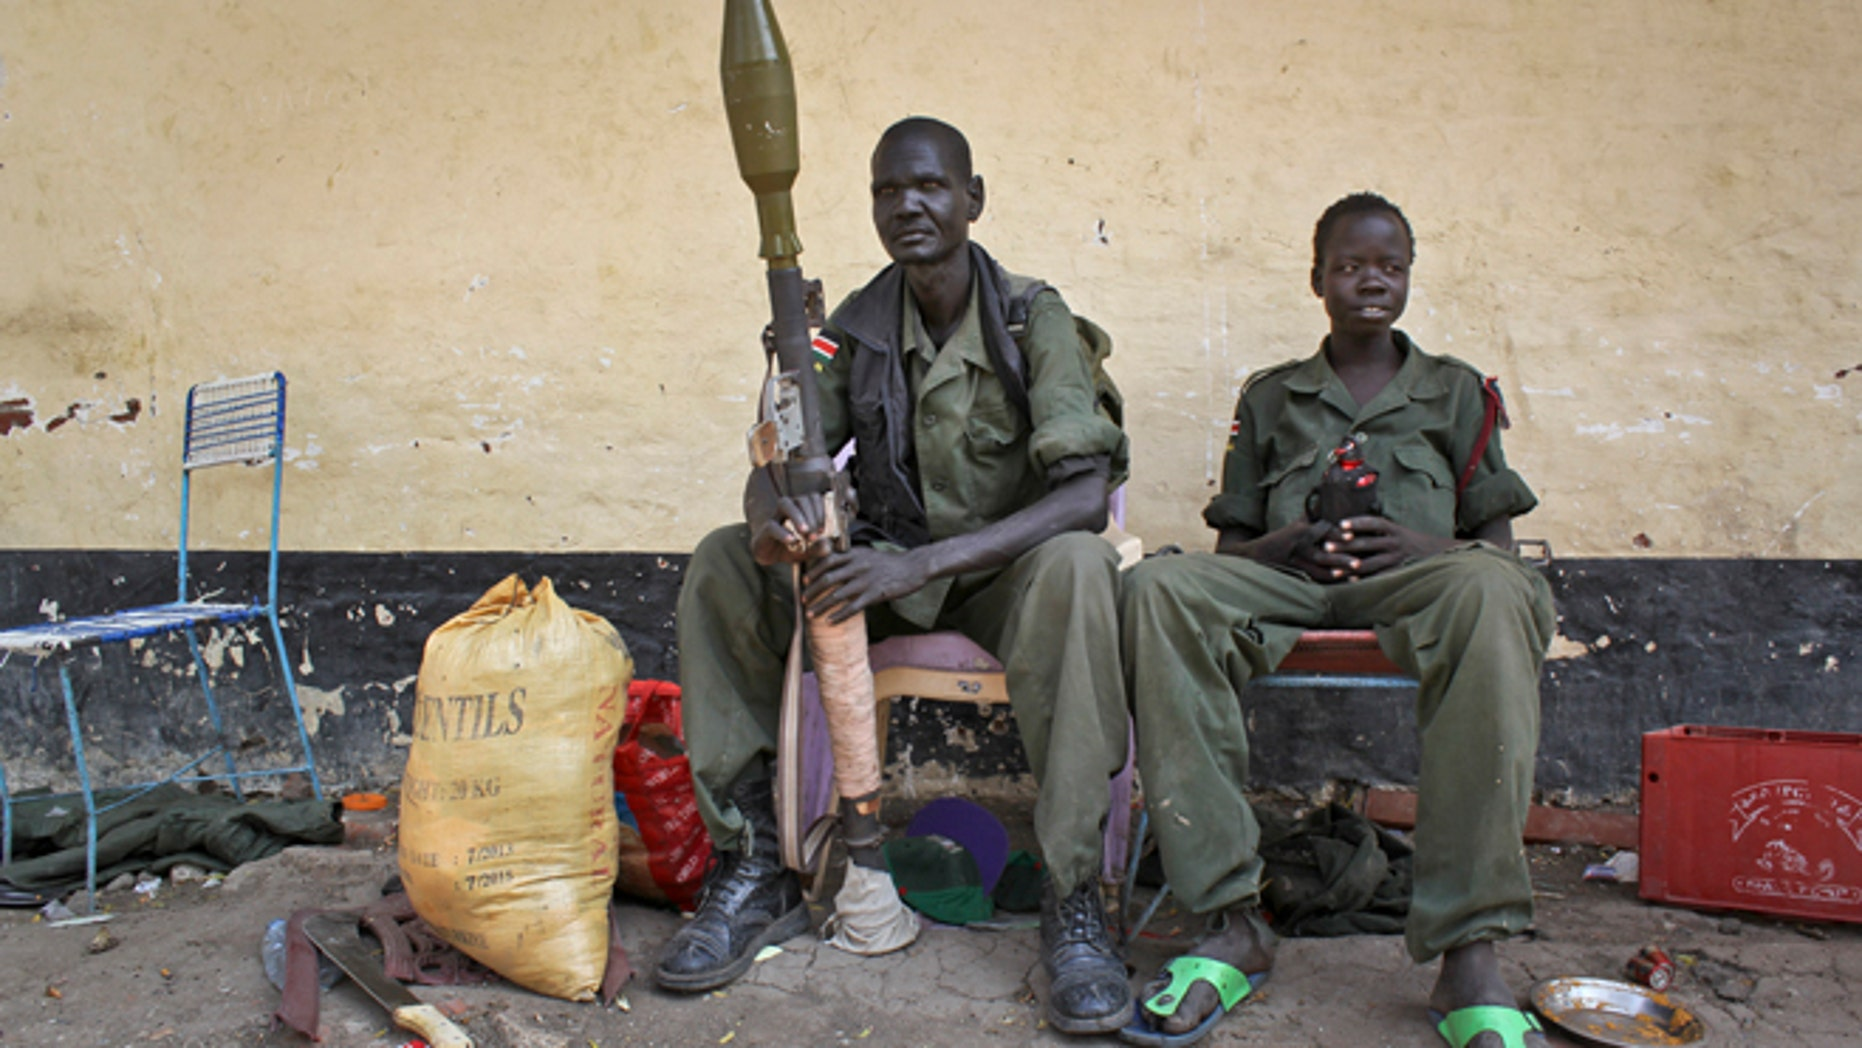 Feb. 26, 2014: Rebels sit in the now-emptied hospital in Malakal, South Sudan.